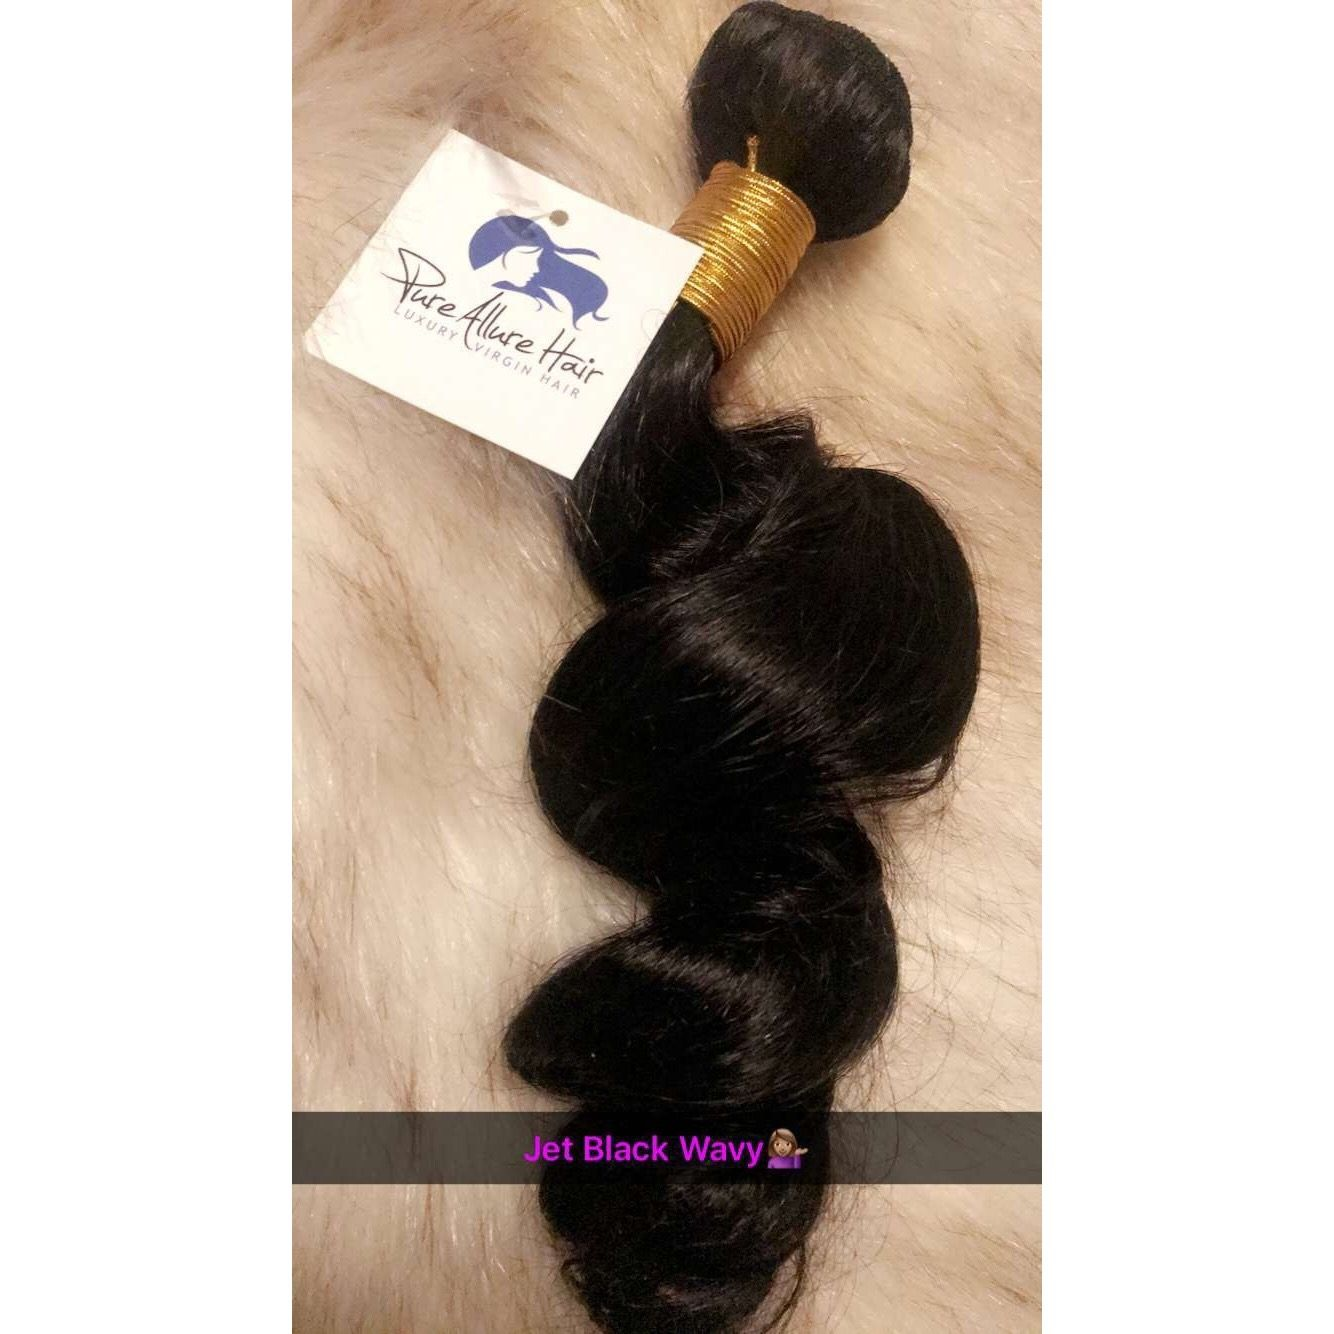 Jet Black Wavy Hair Our Jet Black Hair Extensions gives you an